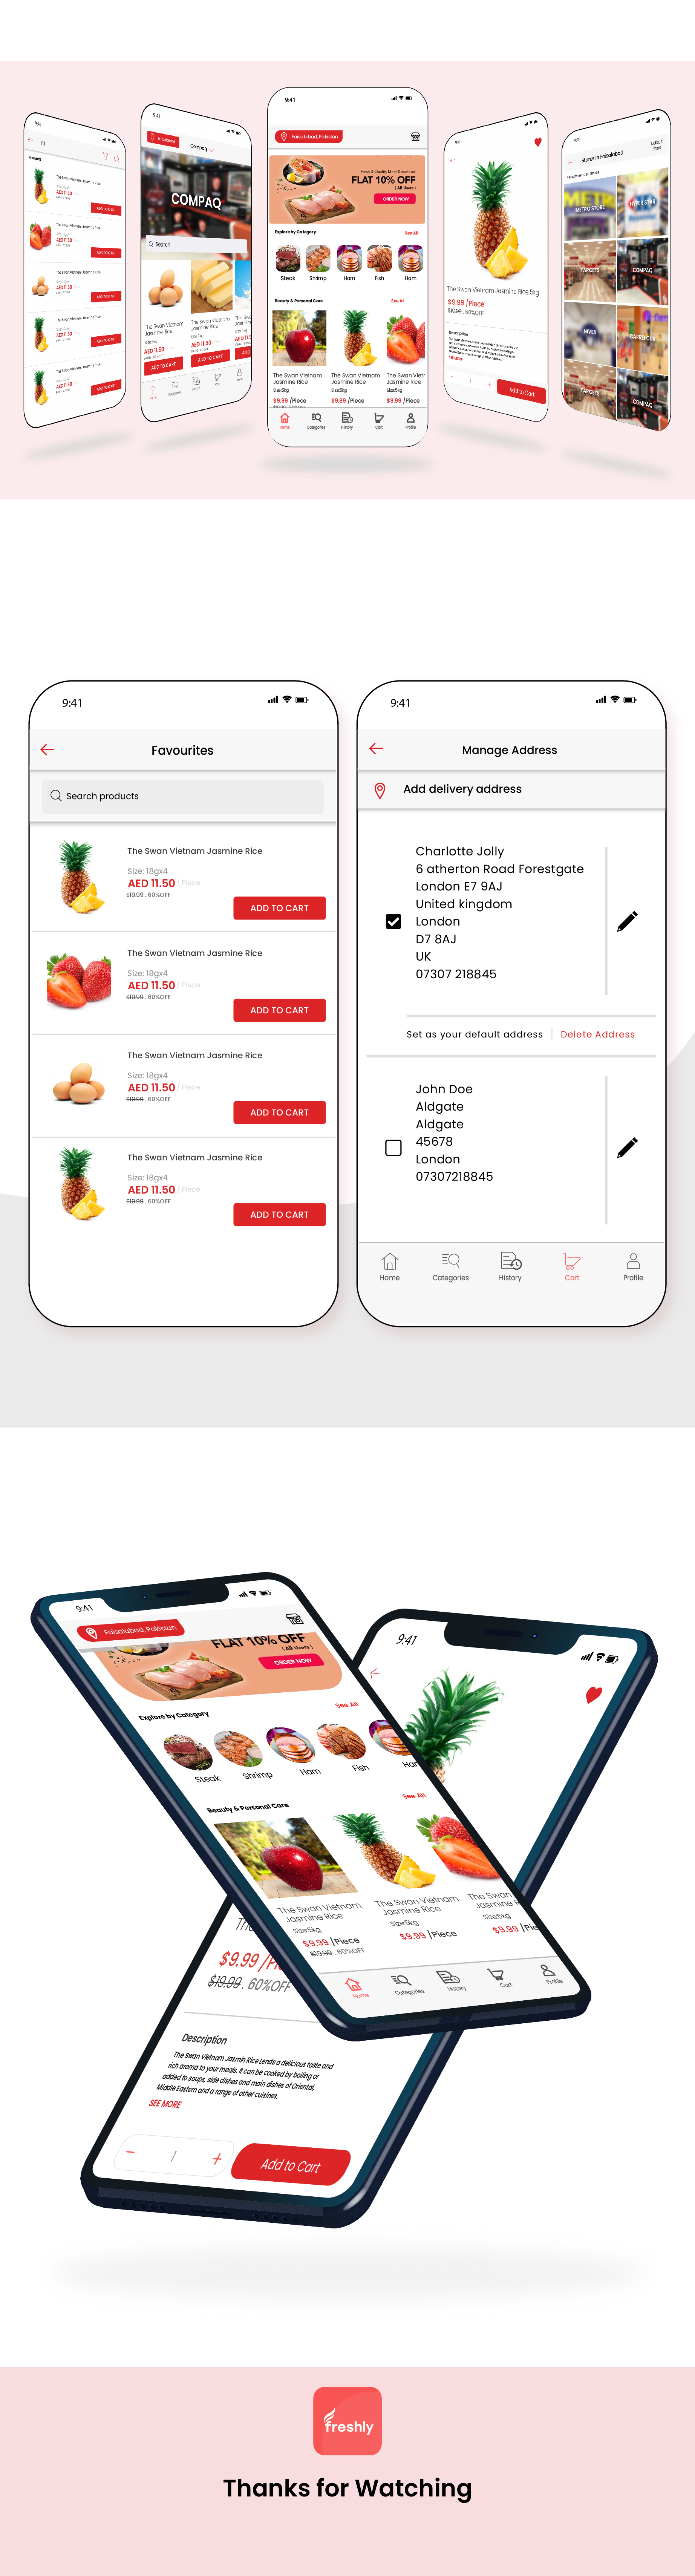 Native Multi Vendor Grocery, Food, Pharmacy, Store Delivery Mobile App with Admin Panel - 4